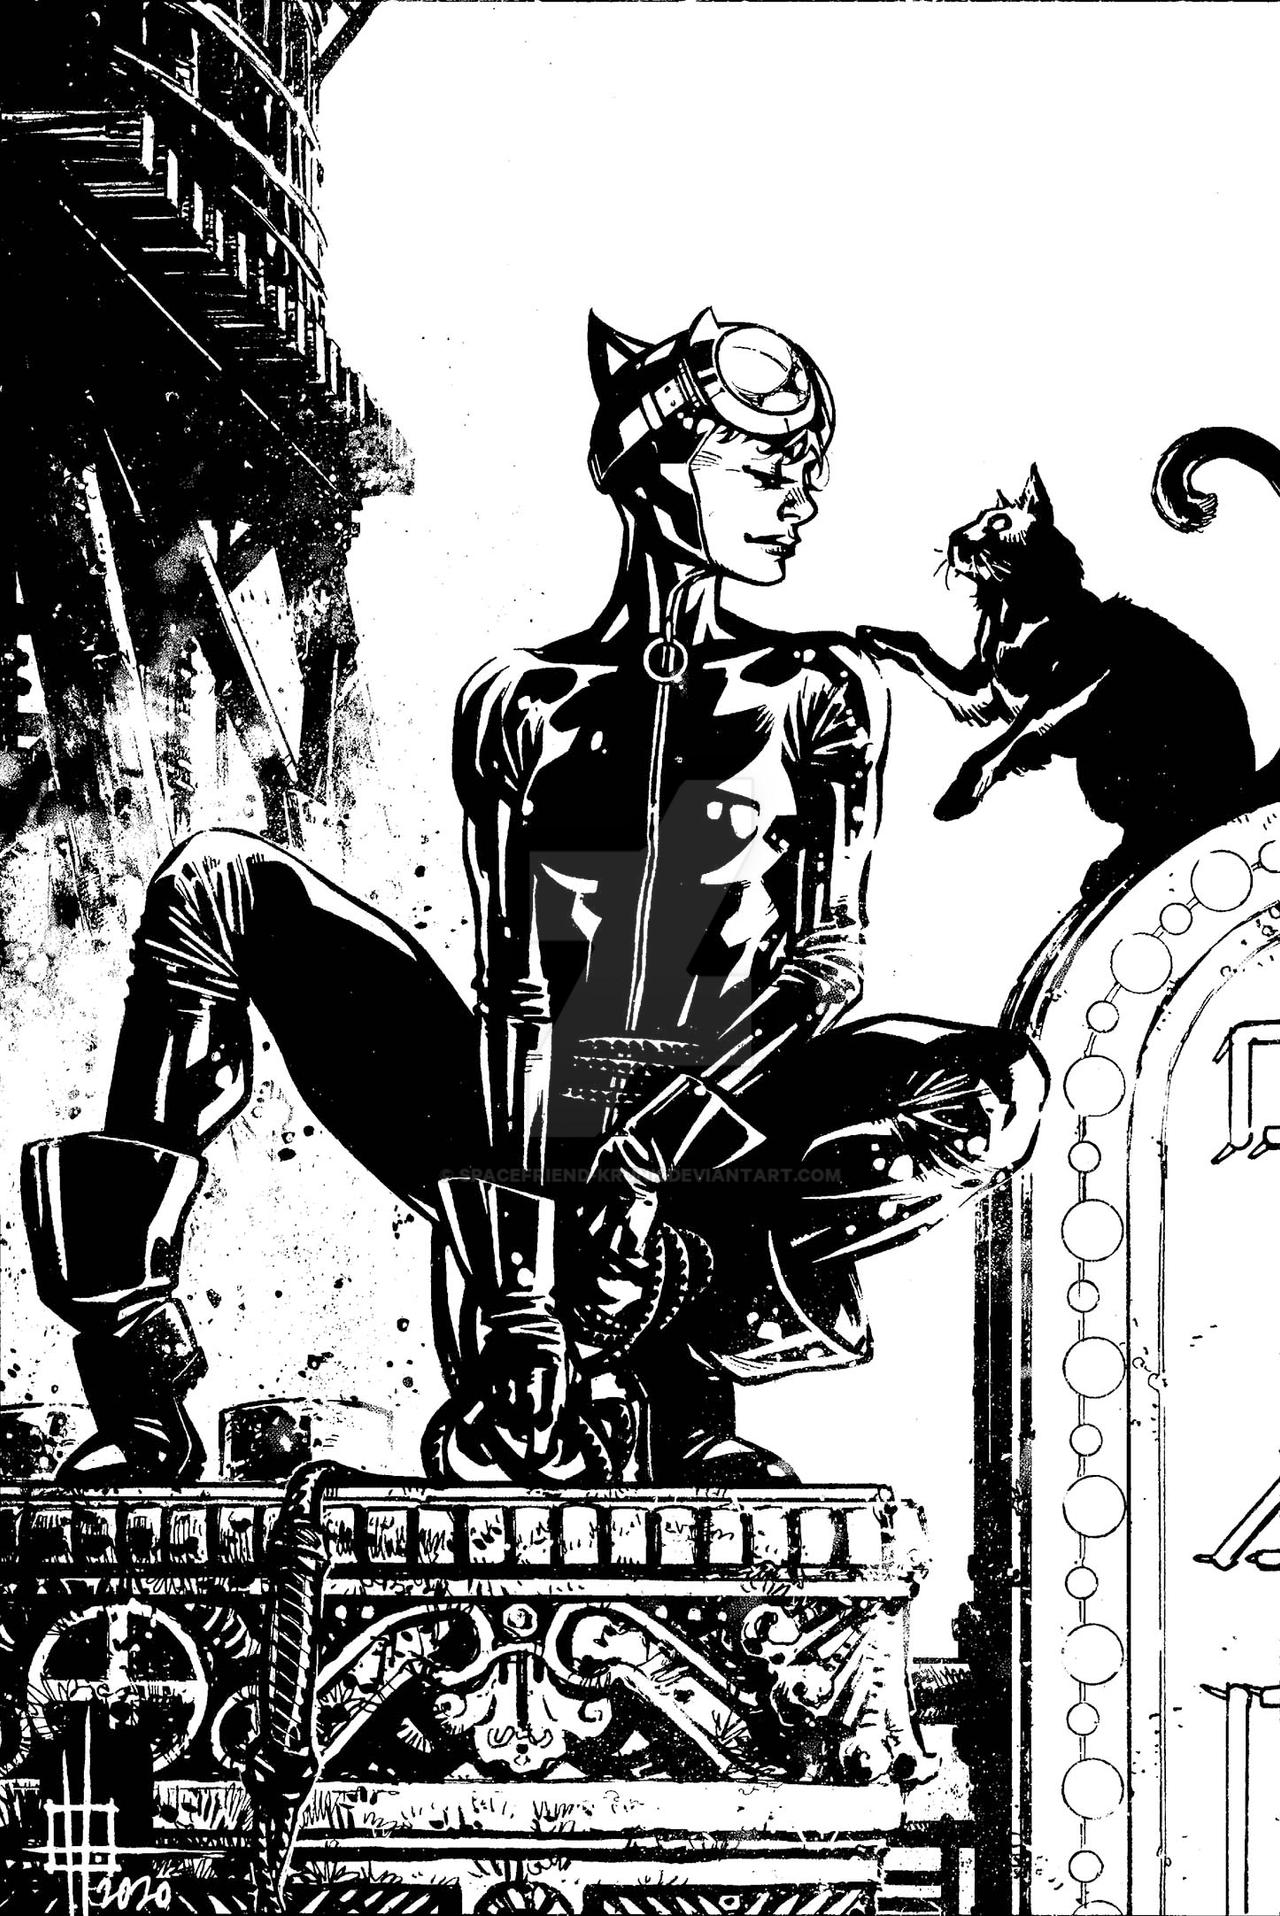 Catwoman commission inks